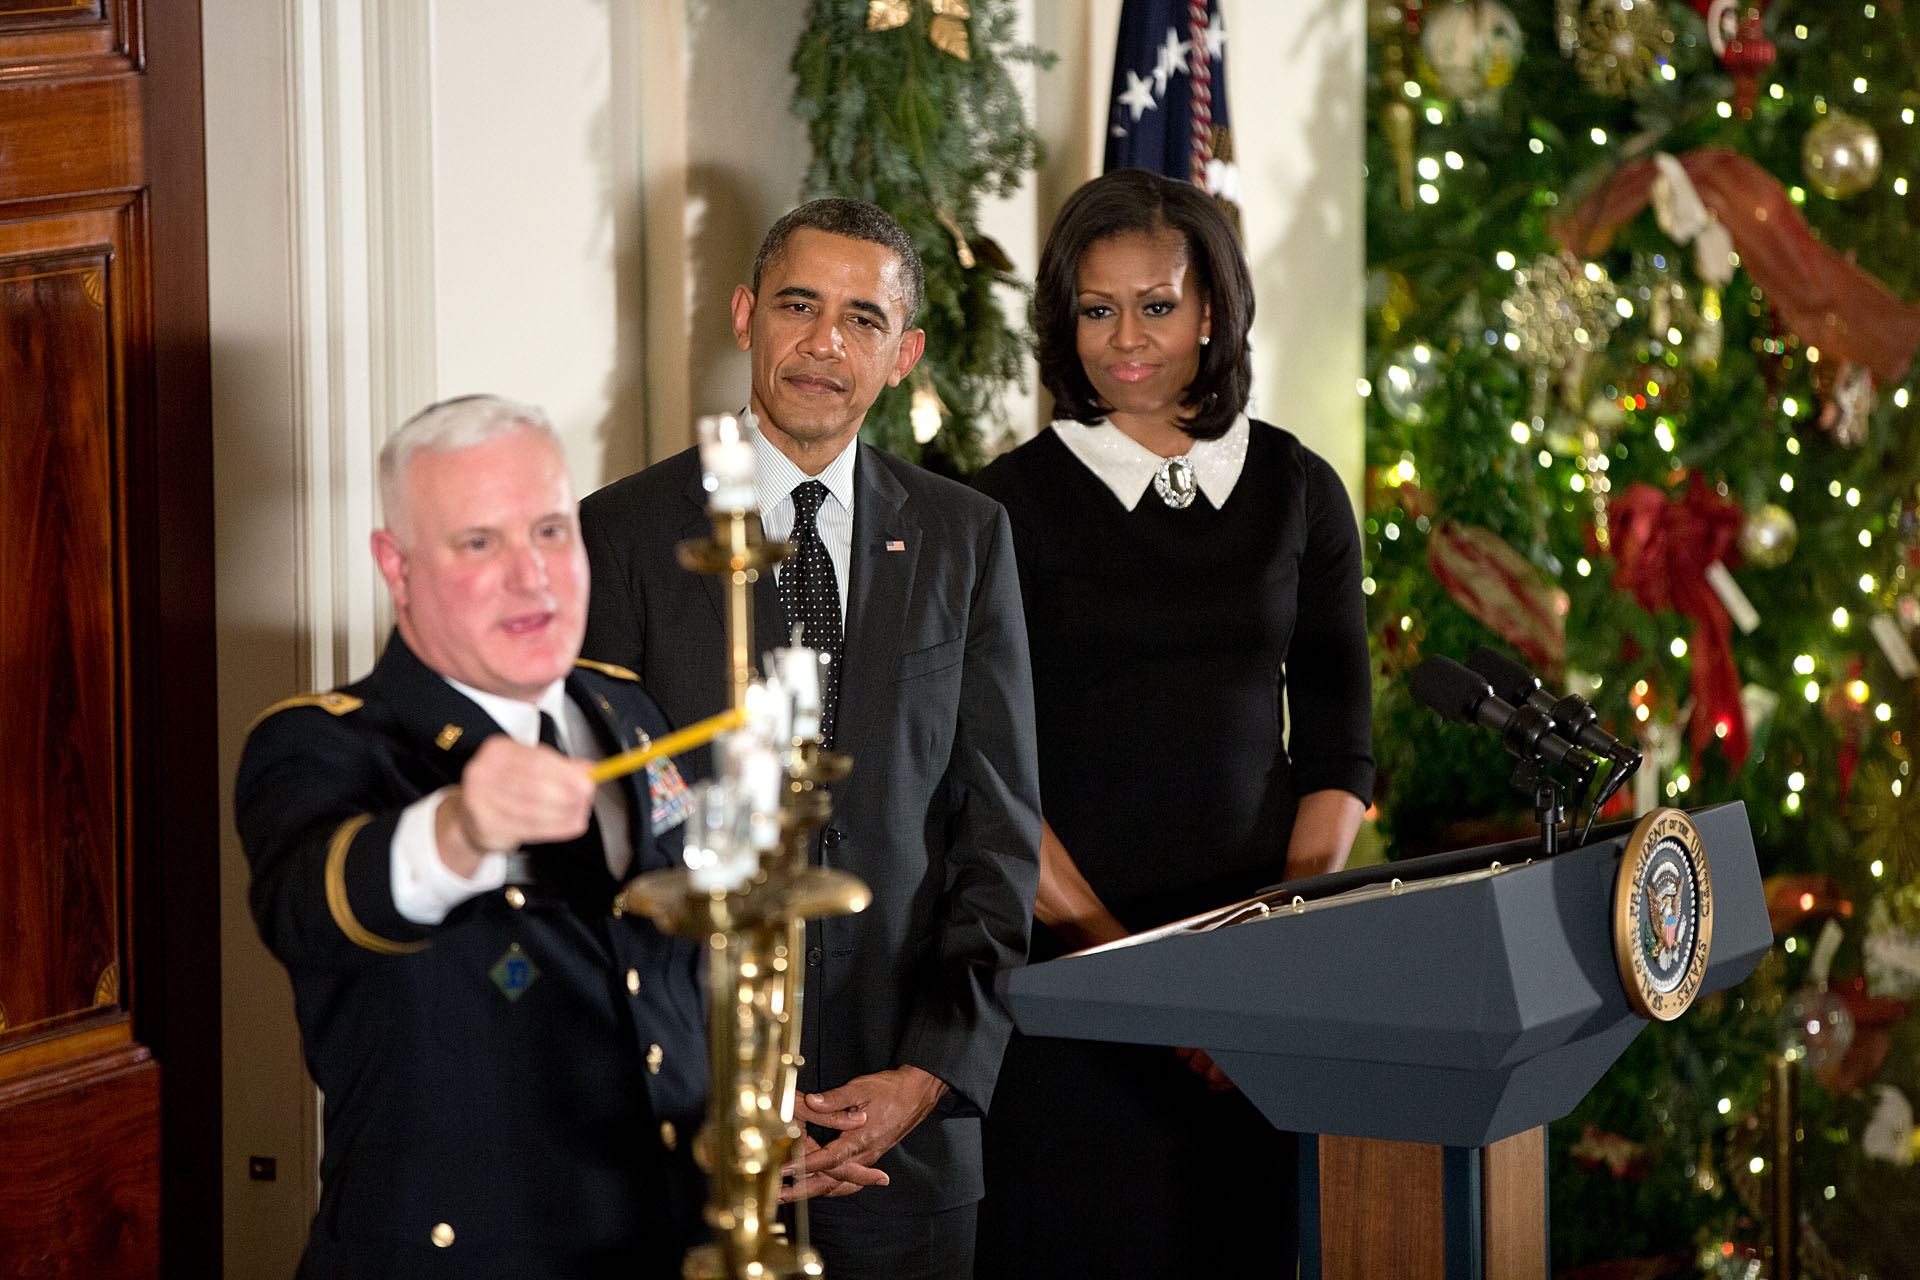 President Barack Obama, First Lady Michelle Obama, and Rabbi Larry Bazer at the 2012 Hanukkah reception, Dec. 13, 2012